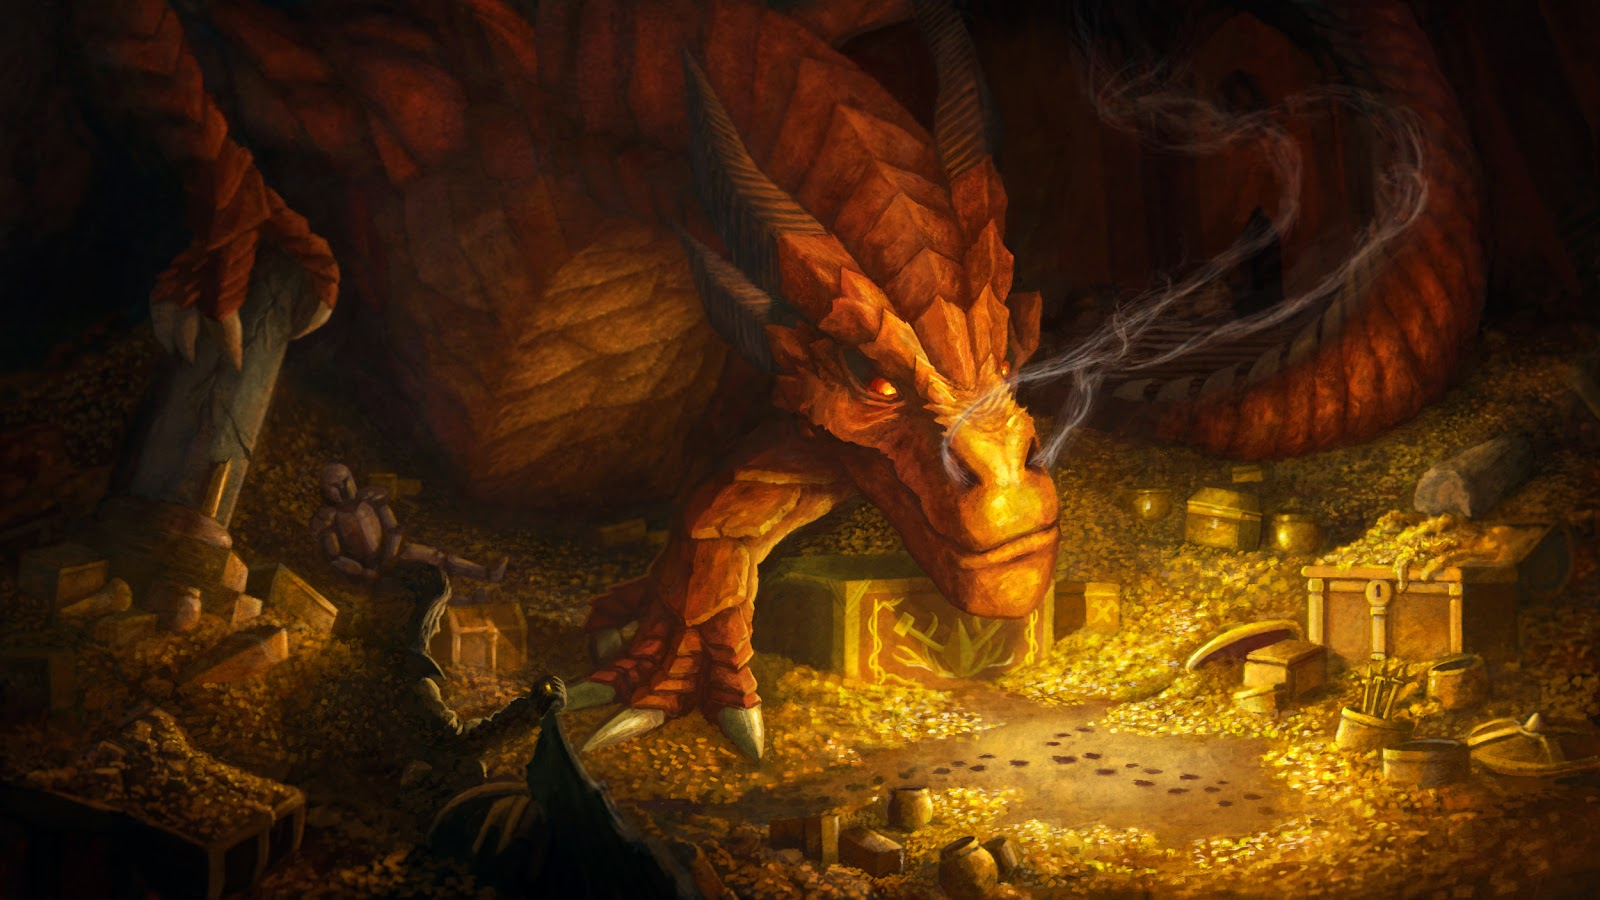 Hobbit Desolation Of Smaug Dragon 5534 Hd Widescreen Wallpapers